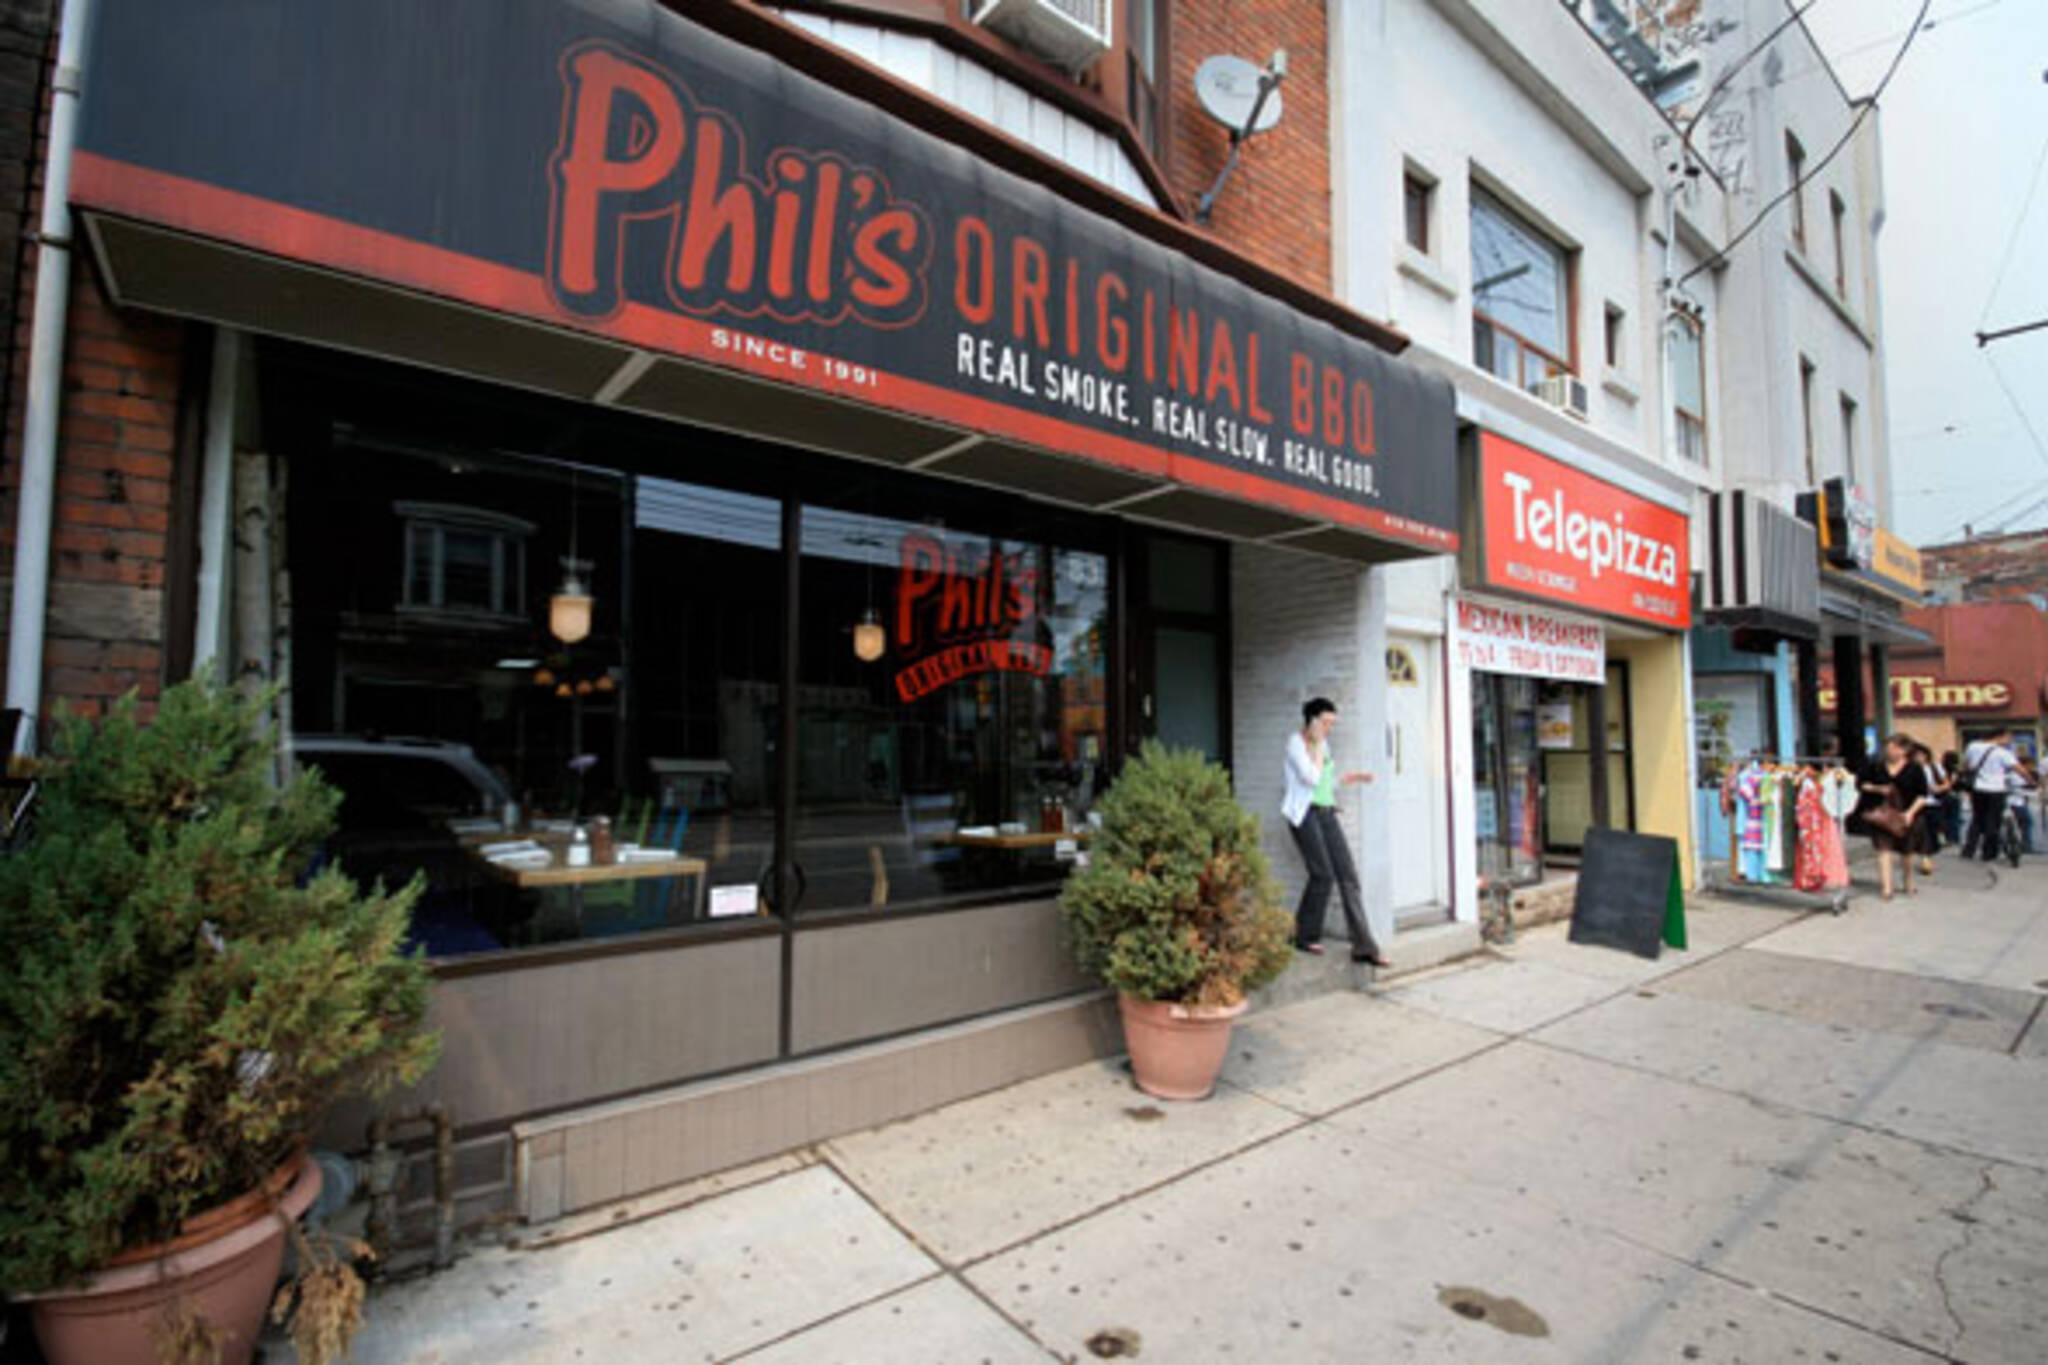 Phils Original BBQ closed